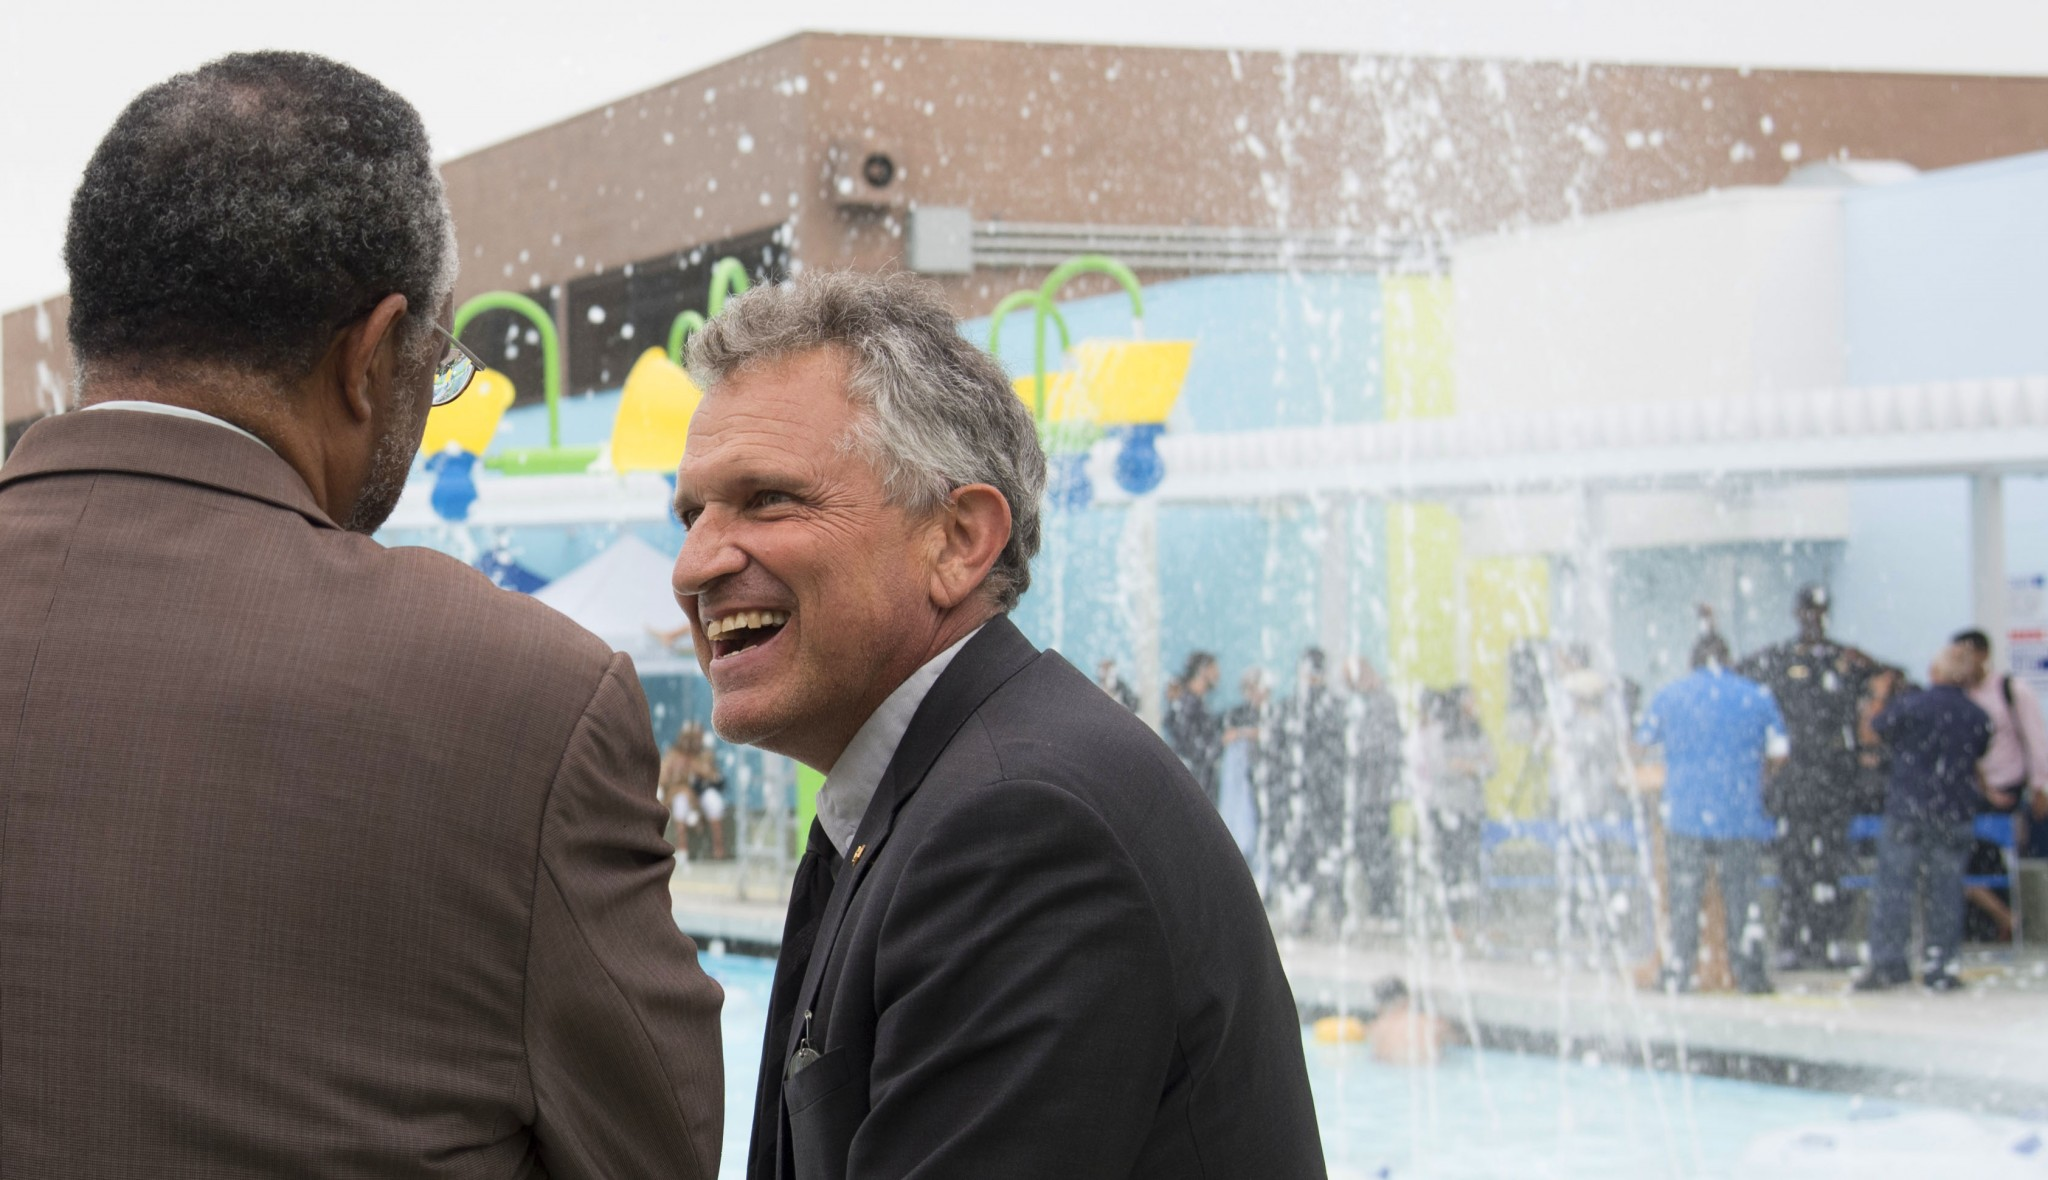 Michael Lehrer at the opening of Central Pool